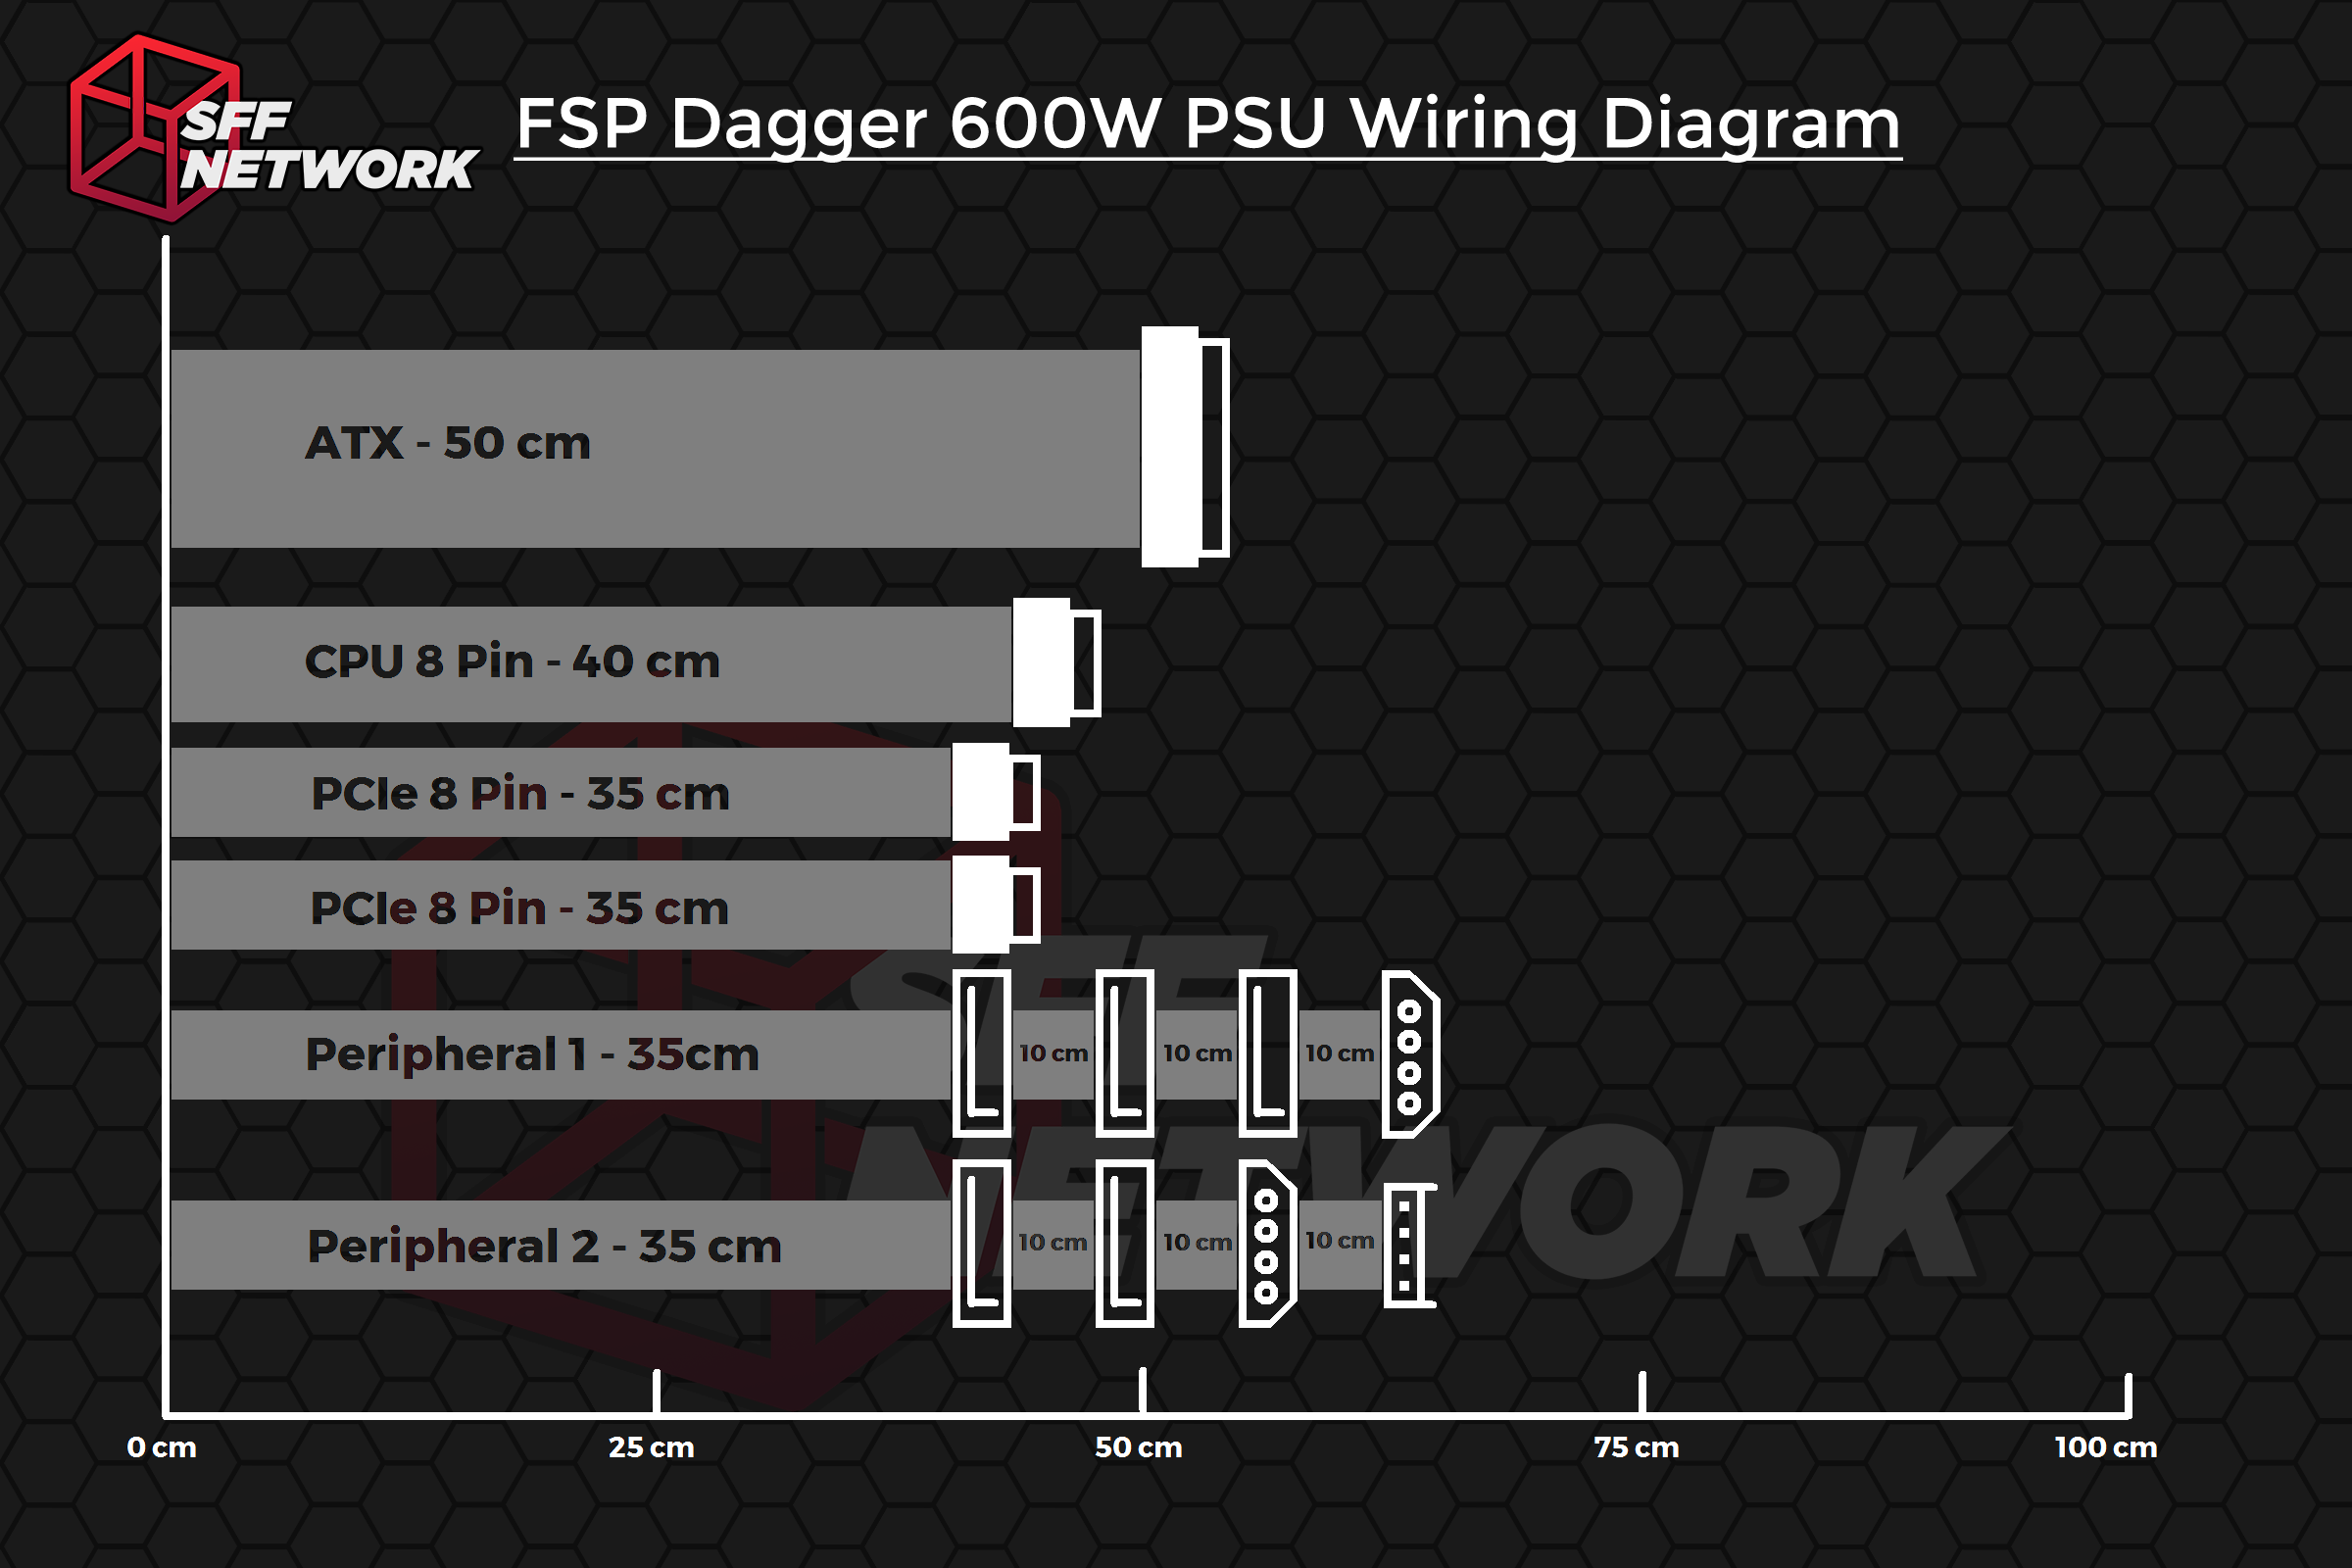 FSP Dagger 600W - A Stab in the Dark? - Small Form Factor Network